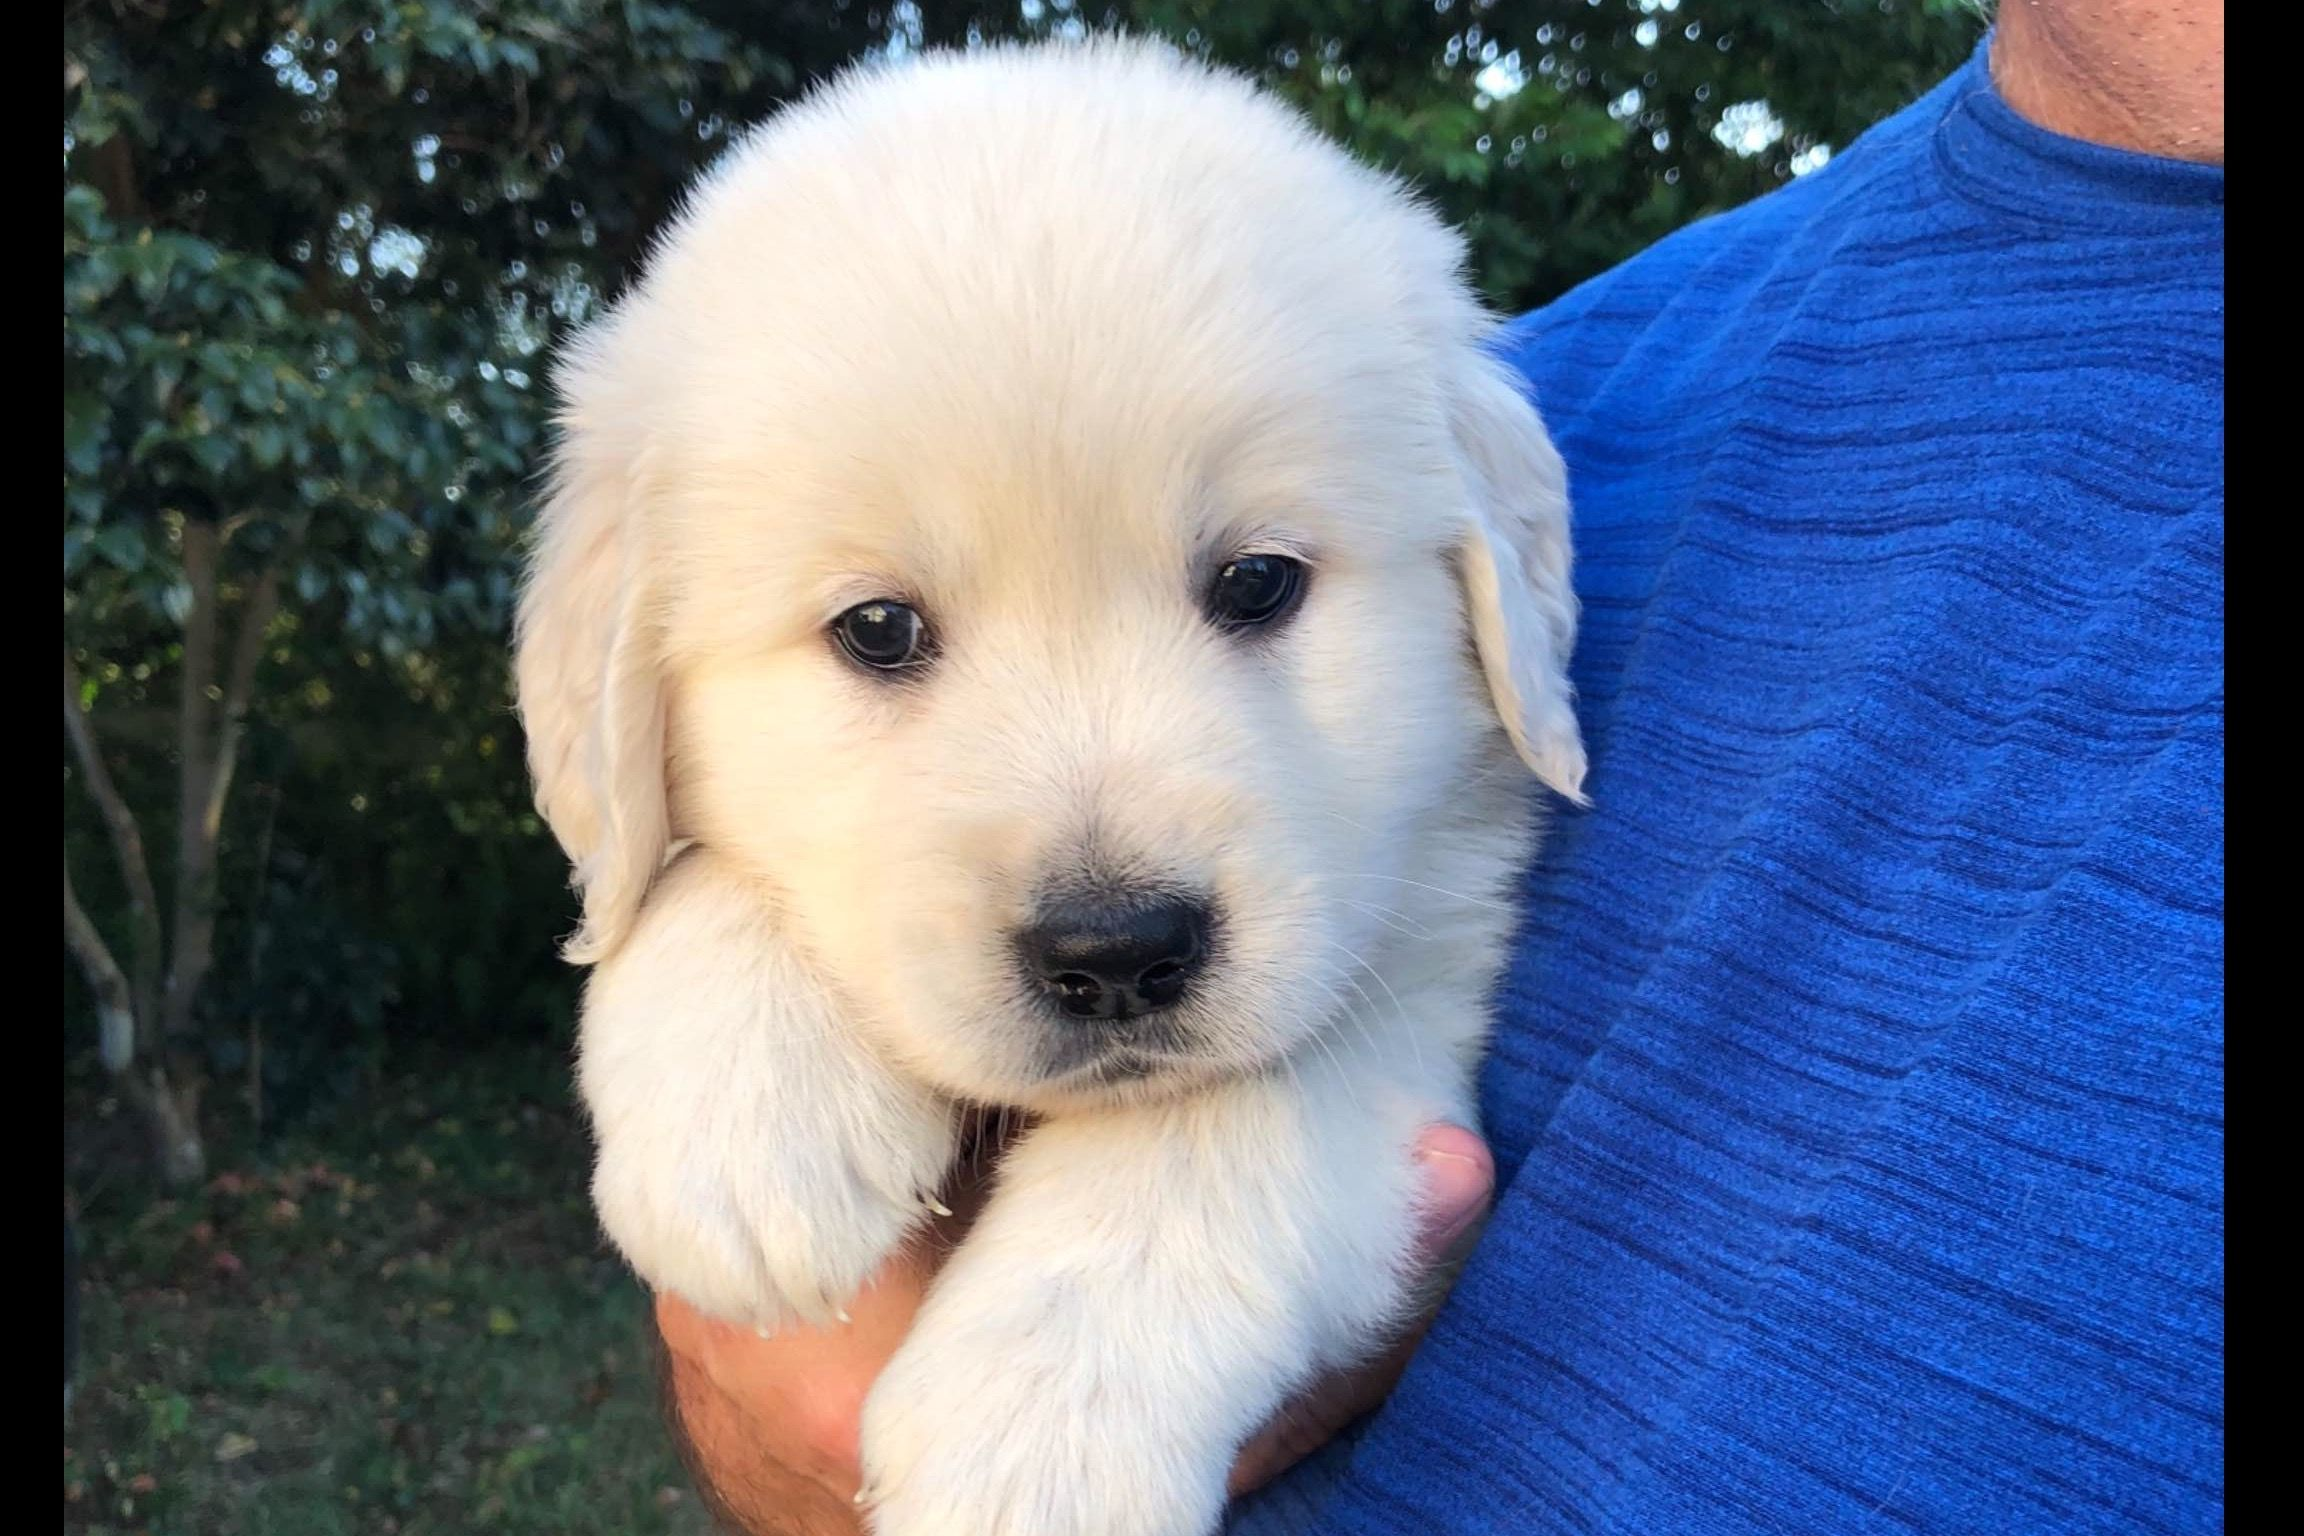 Golden Treasures Kennel Has Golden Retriever Puppies For Sale In Pensacola Fl On Akc Puppyfinder Golden Retriever Golden Puppies Puppies